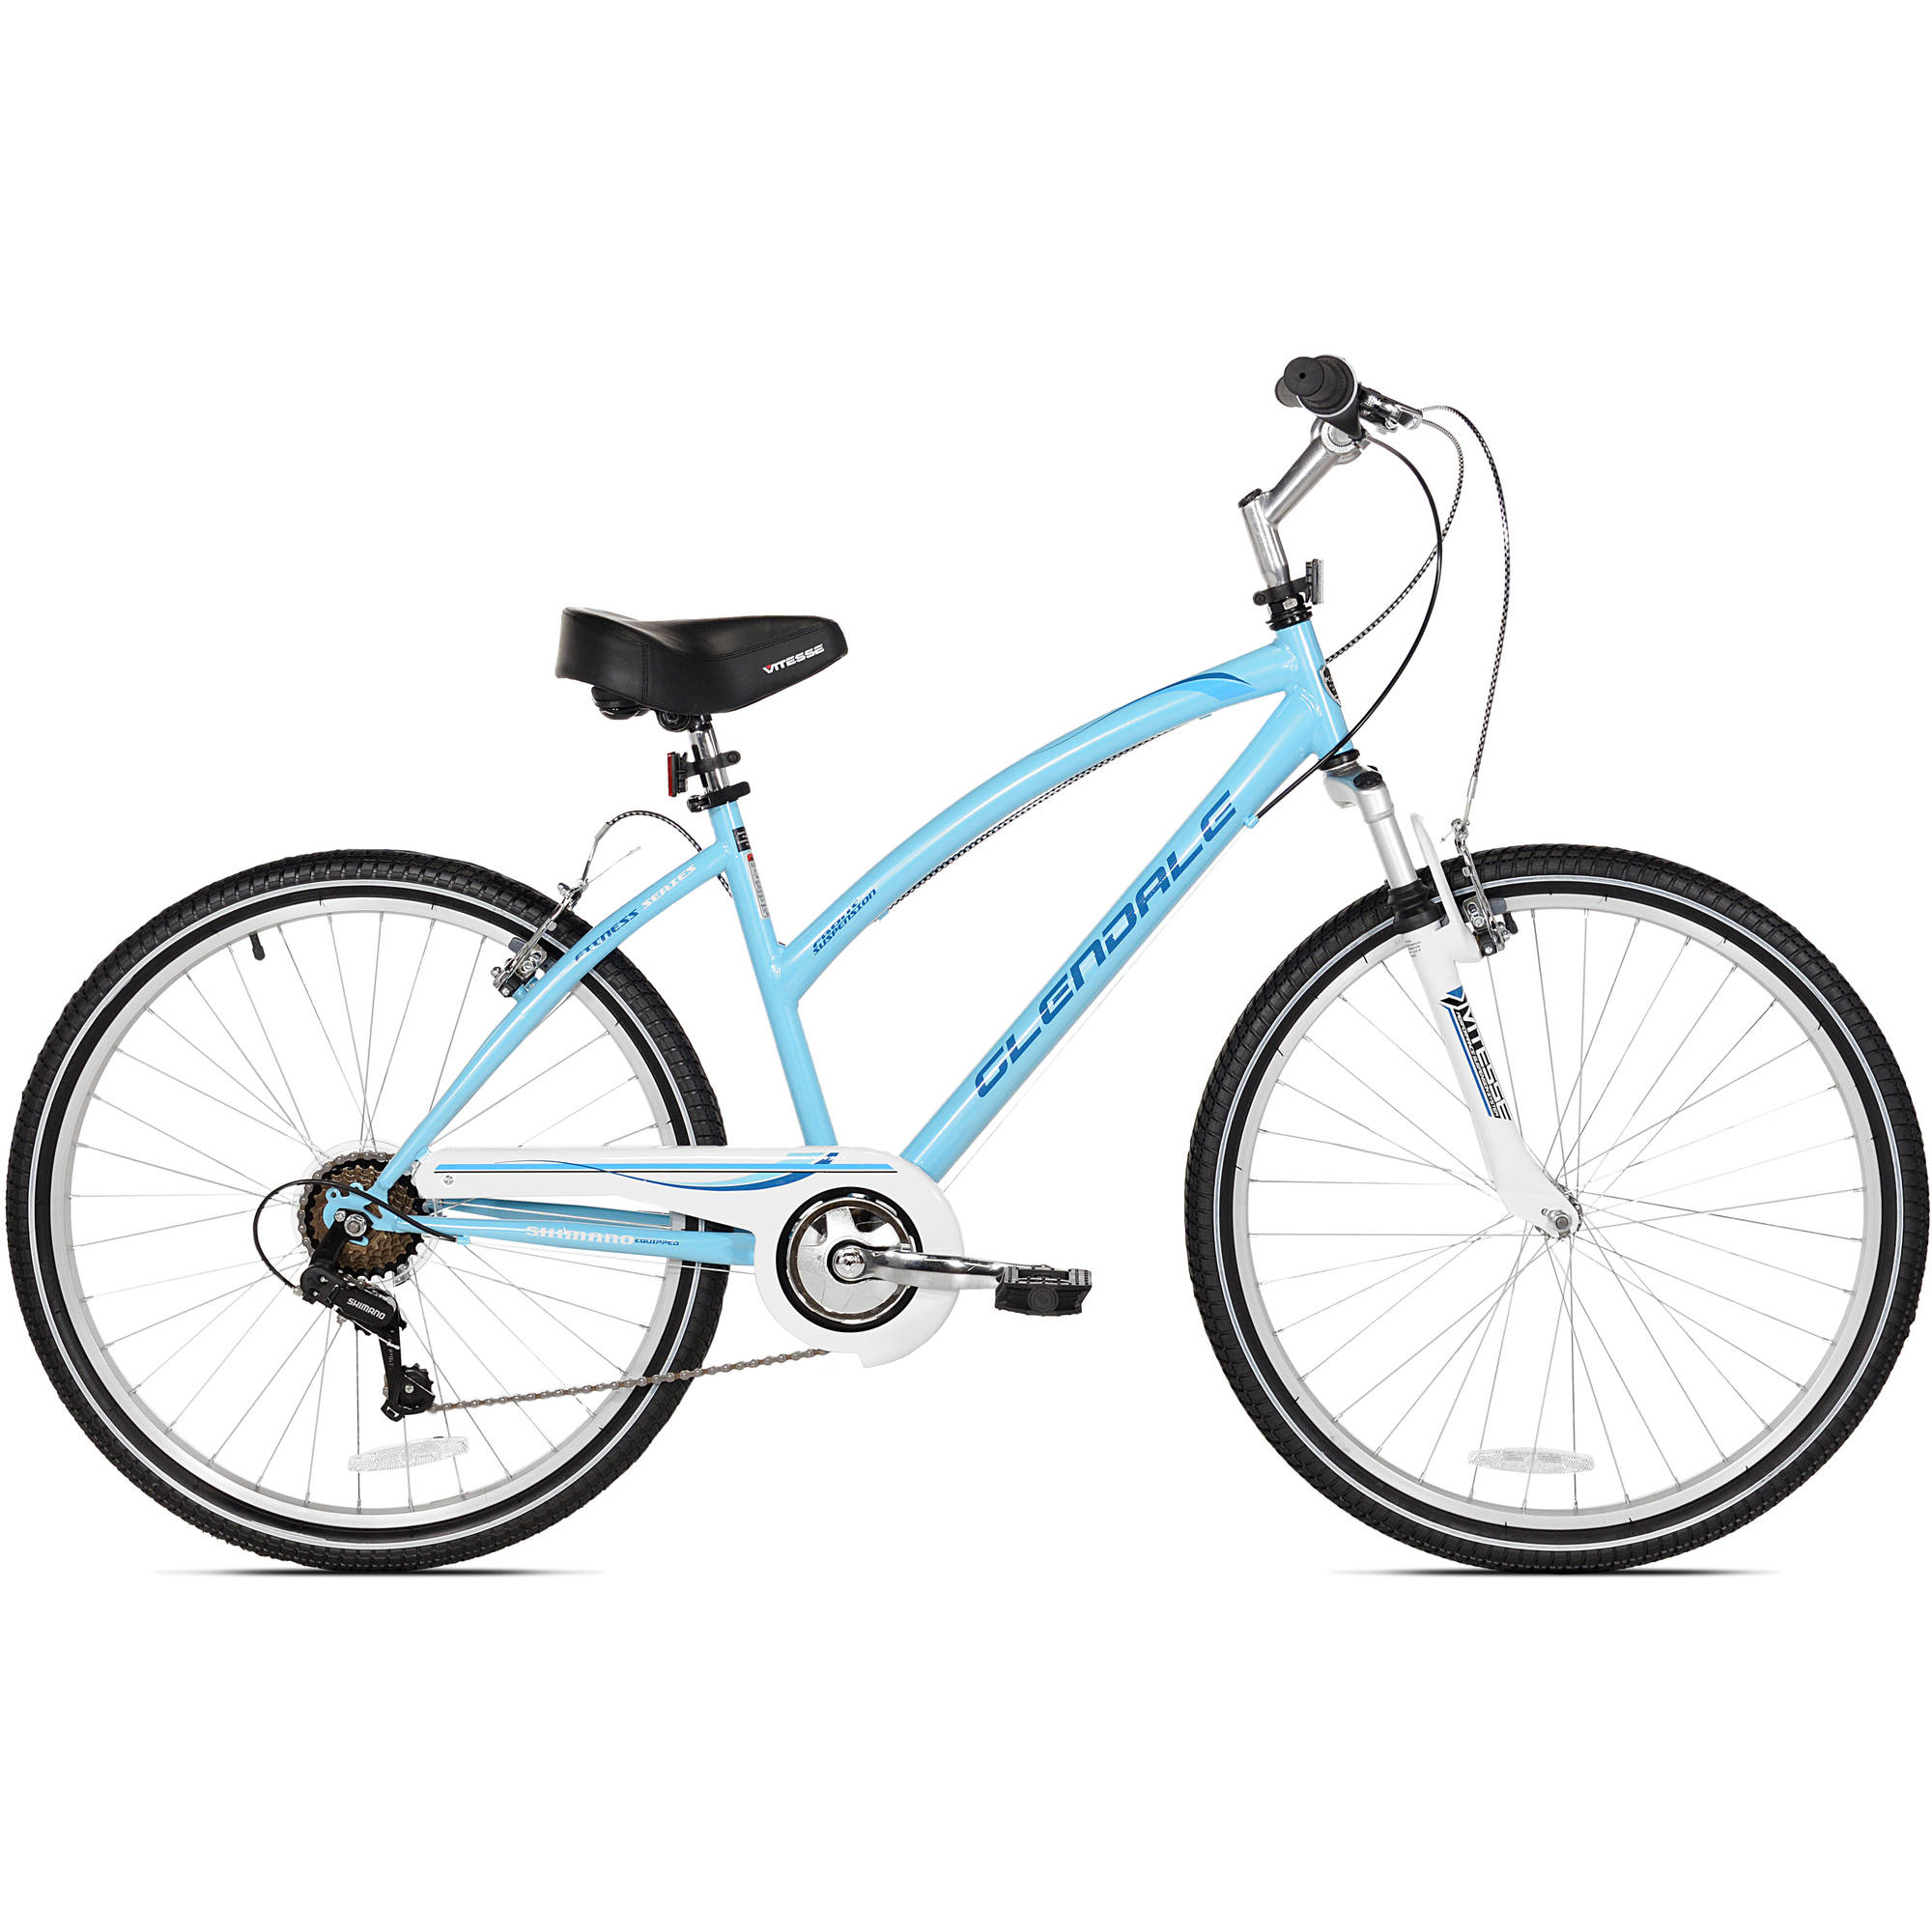 "26"" Women's Kent Glendale Bike, Blue by Kent International Inc"